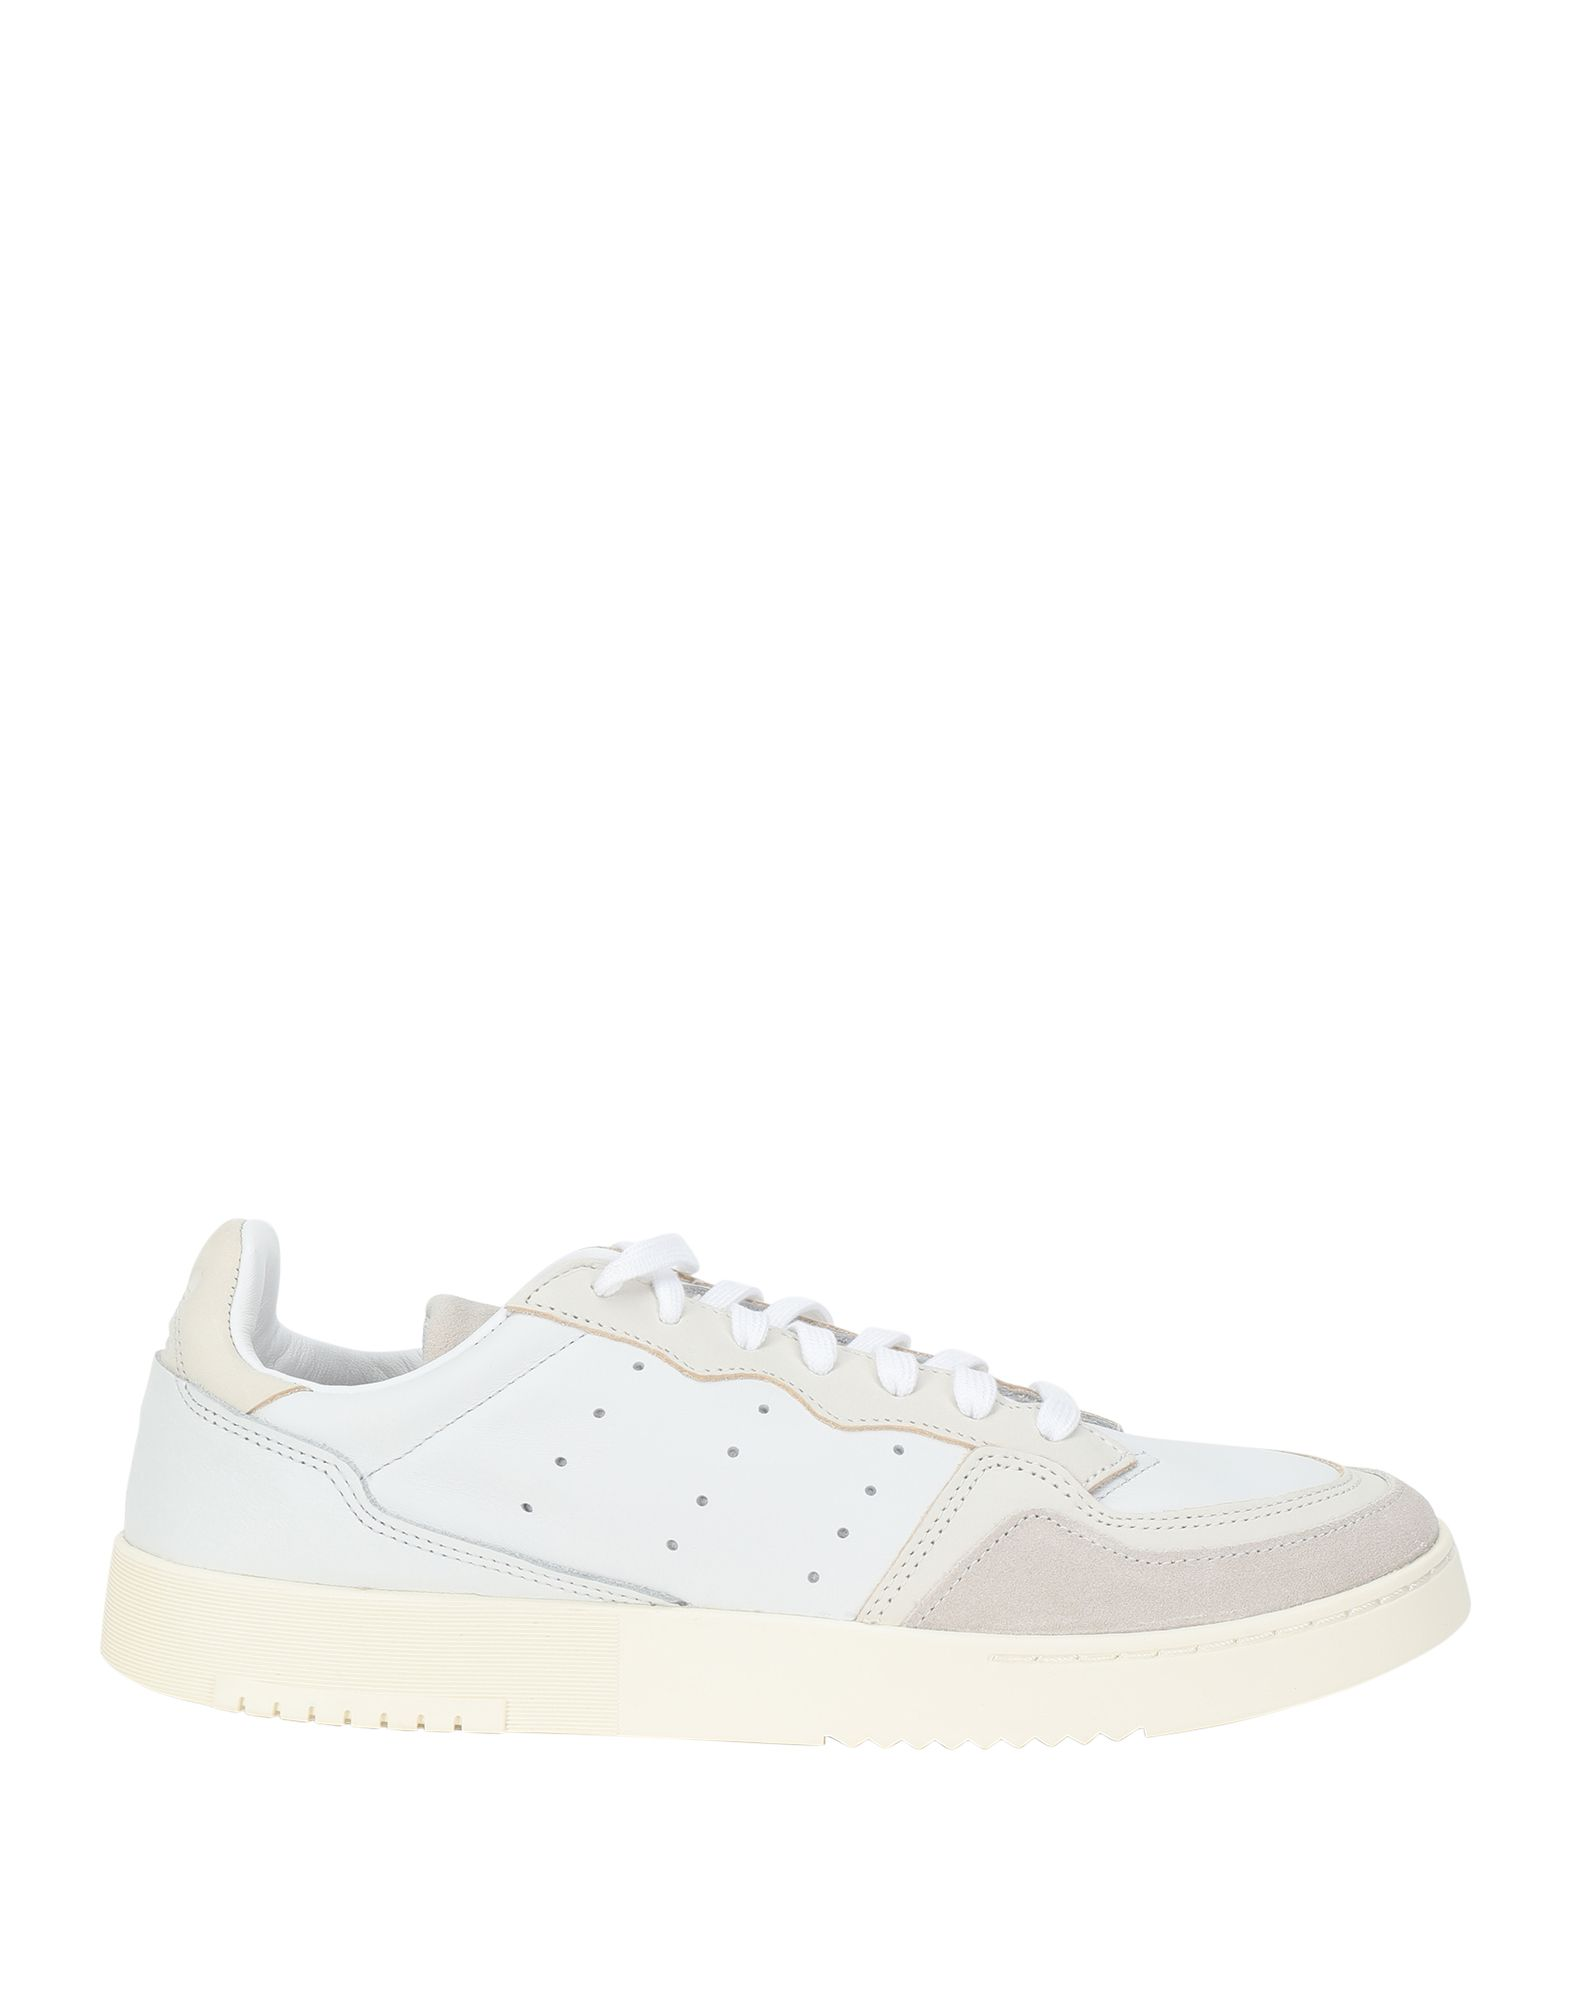 Baskets Adidas Originals Supercourt - Homme - baskets Adidas Originals   - 11741827EG